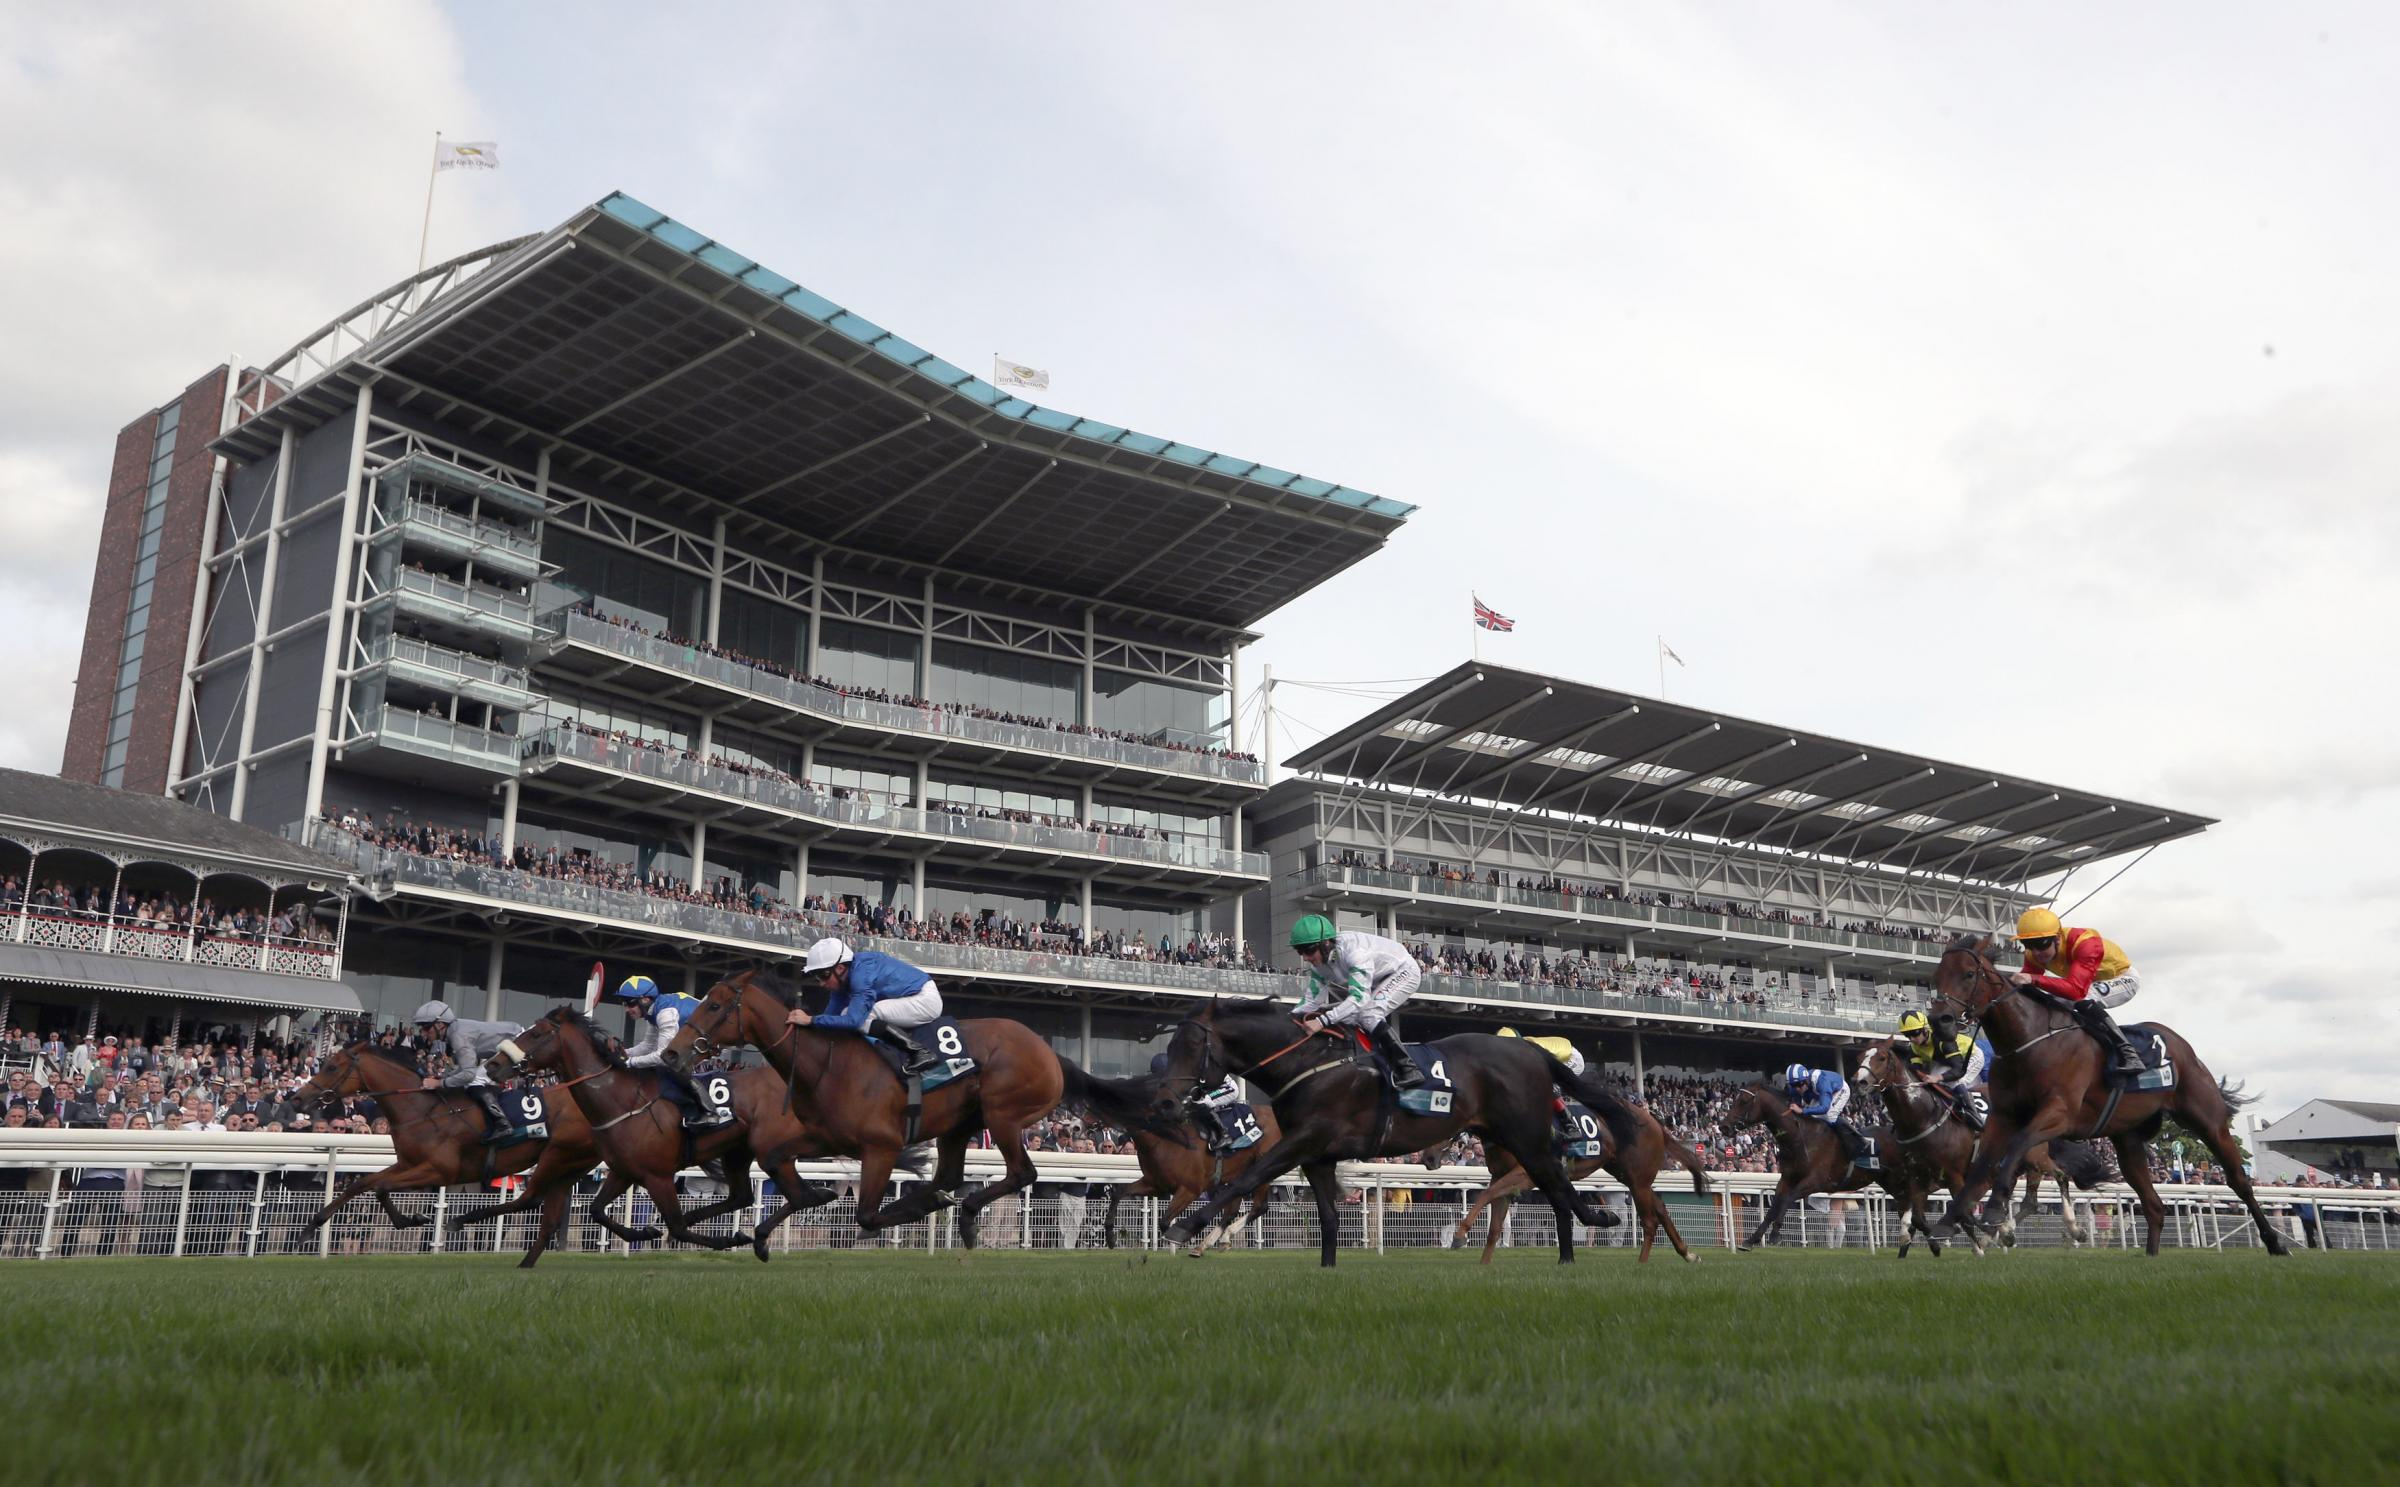 Main Desire ridden by Daniel Tudhope (far left, grey silks) wins the British Stallion Studs EBF Westow Stakes during day two of the 2018 Dante Festival at York Racecourse. PRESS ASSOCIATION Photo. Picture date: Thursday May 17, 2018. See PA story RACING Y